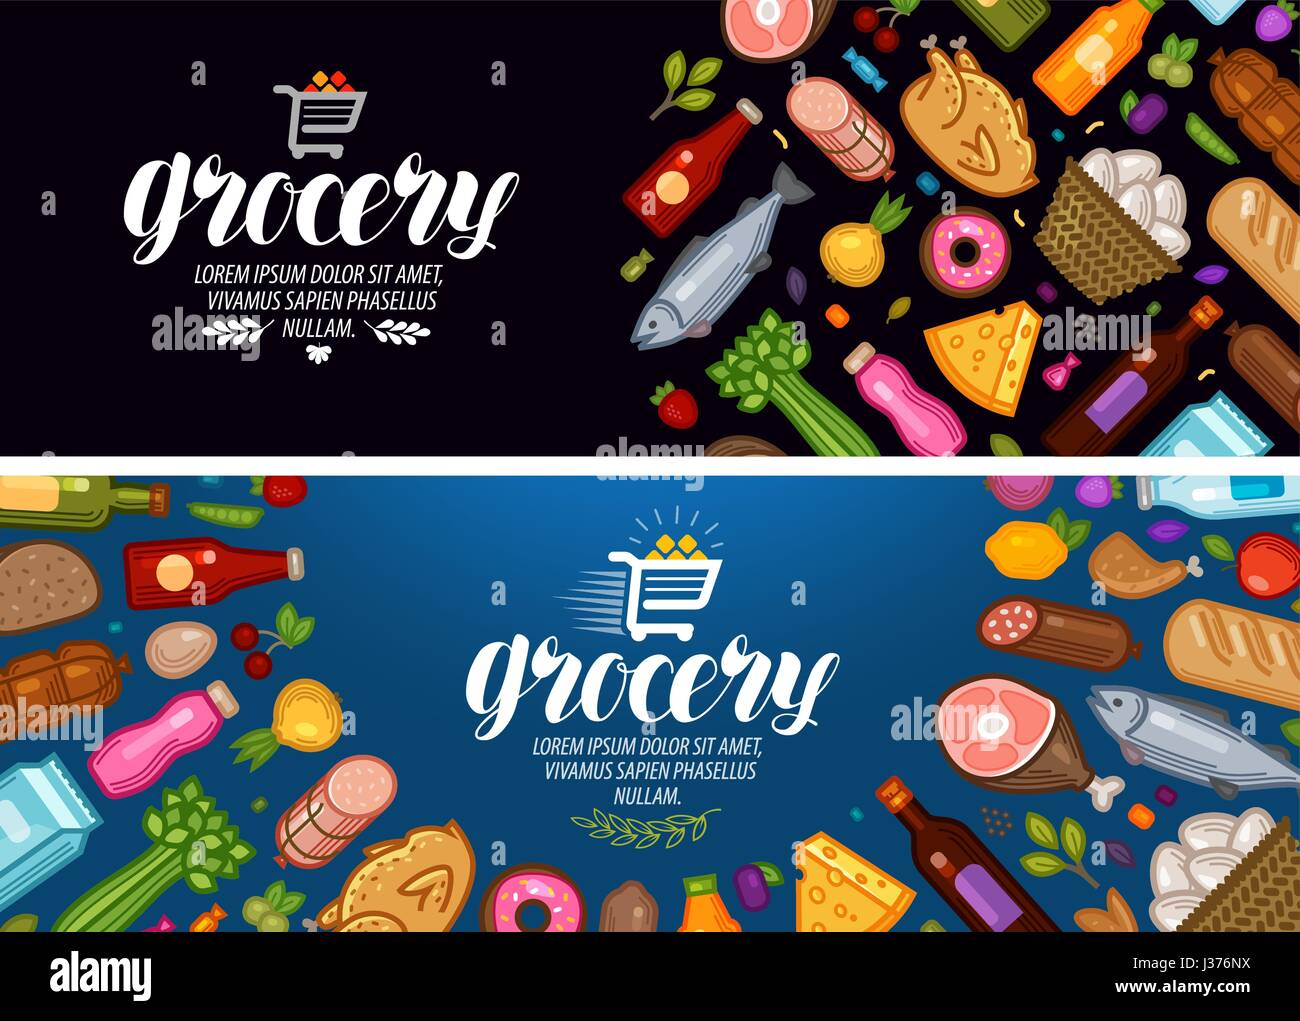 Grocery store, banner. Food and drinks label. Vector illustration - Stock Vector